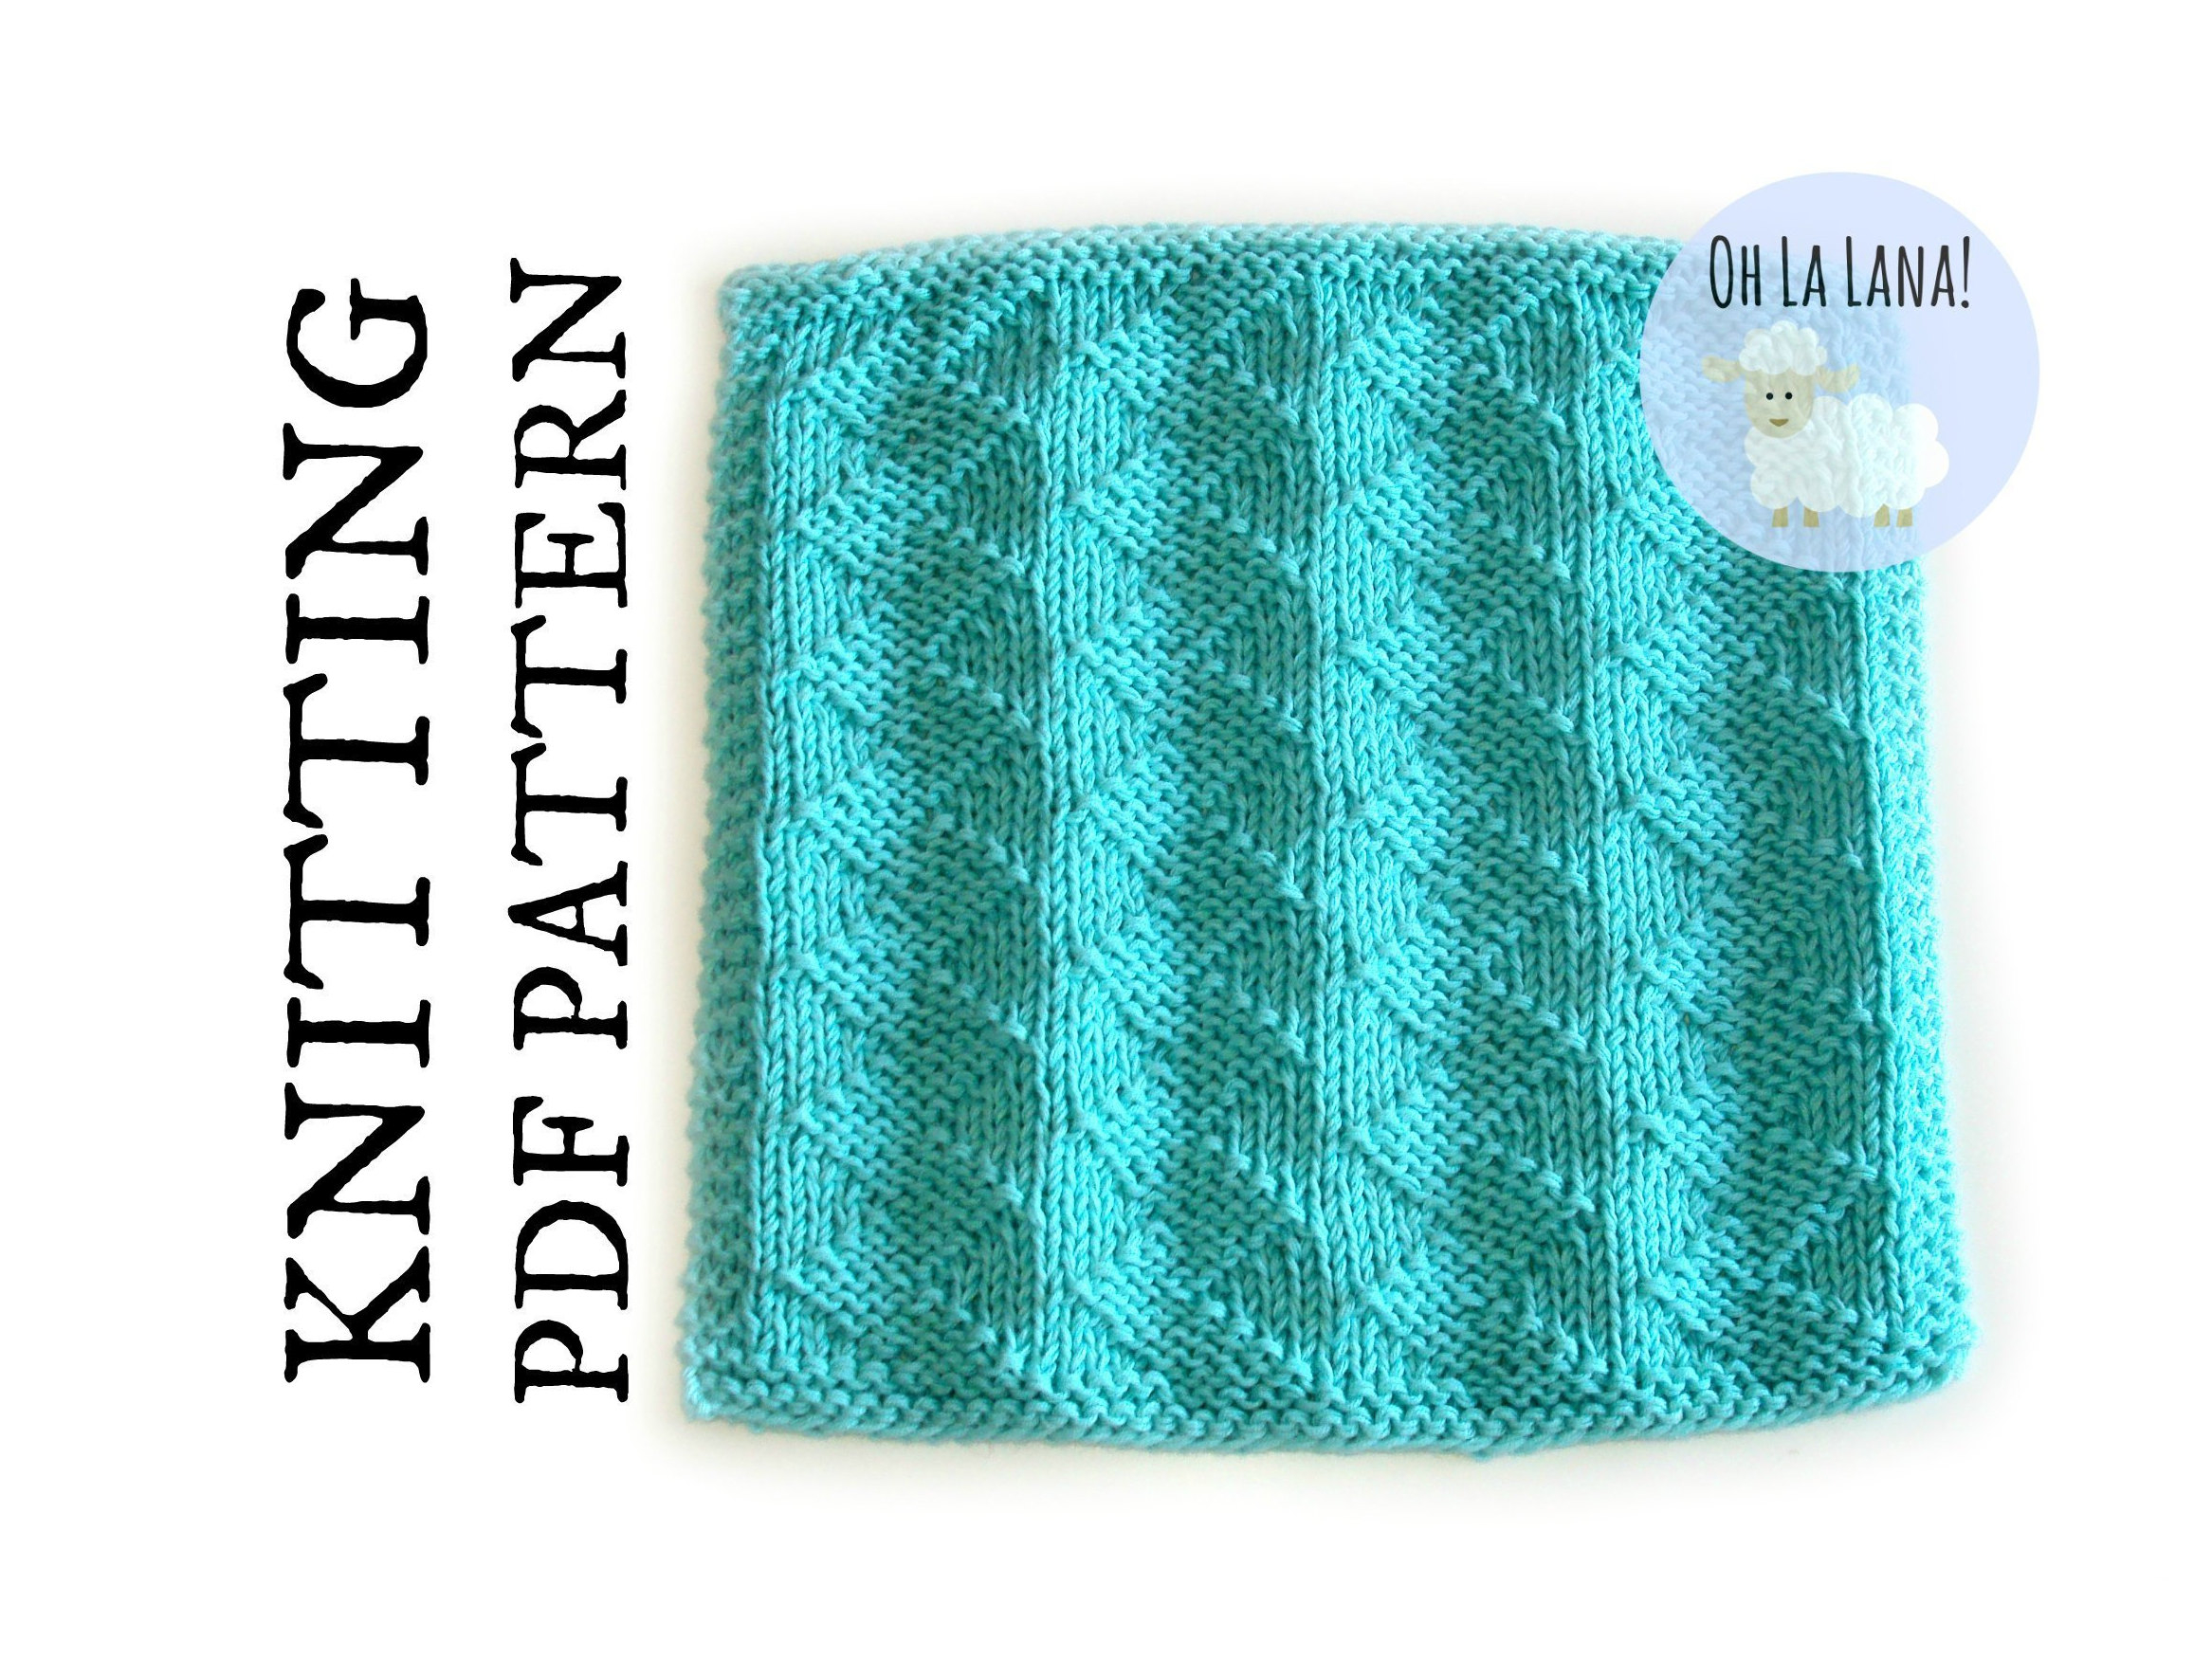 Easy Dishcloth Knit Pattern Easy Knitting Pattern Zig Zag Dishcloth Easy Washcloth Knitting Pattern Knit And Purl Beginner Knitting Pattern Instant Download